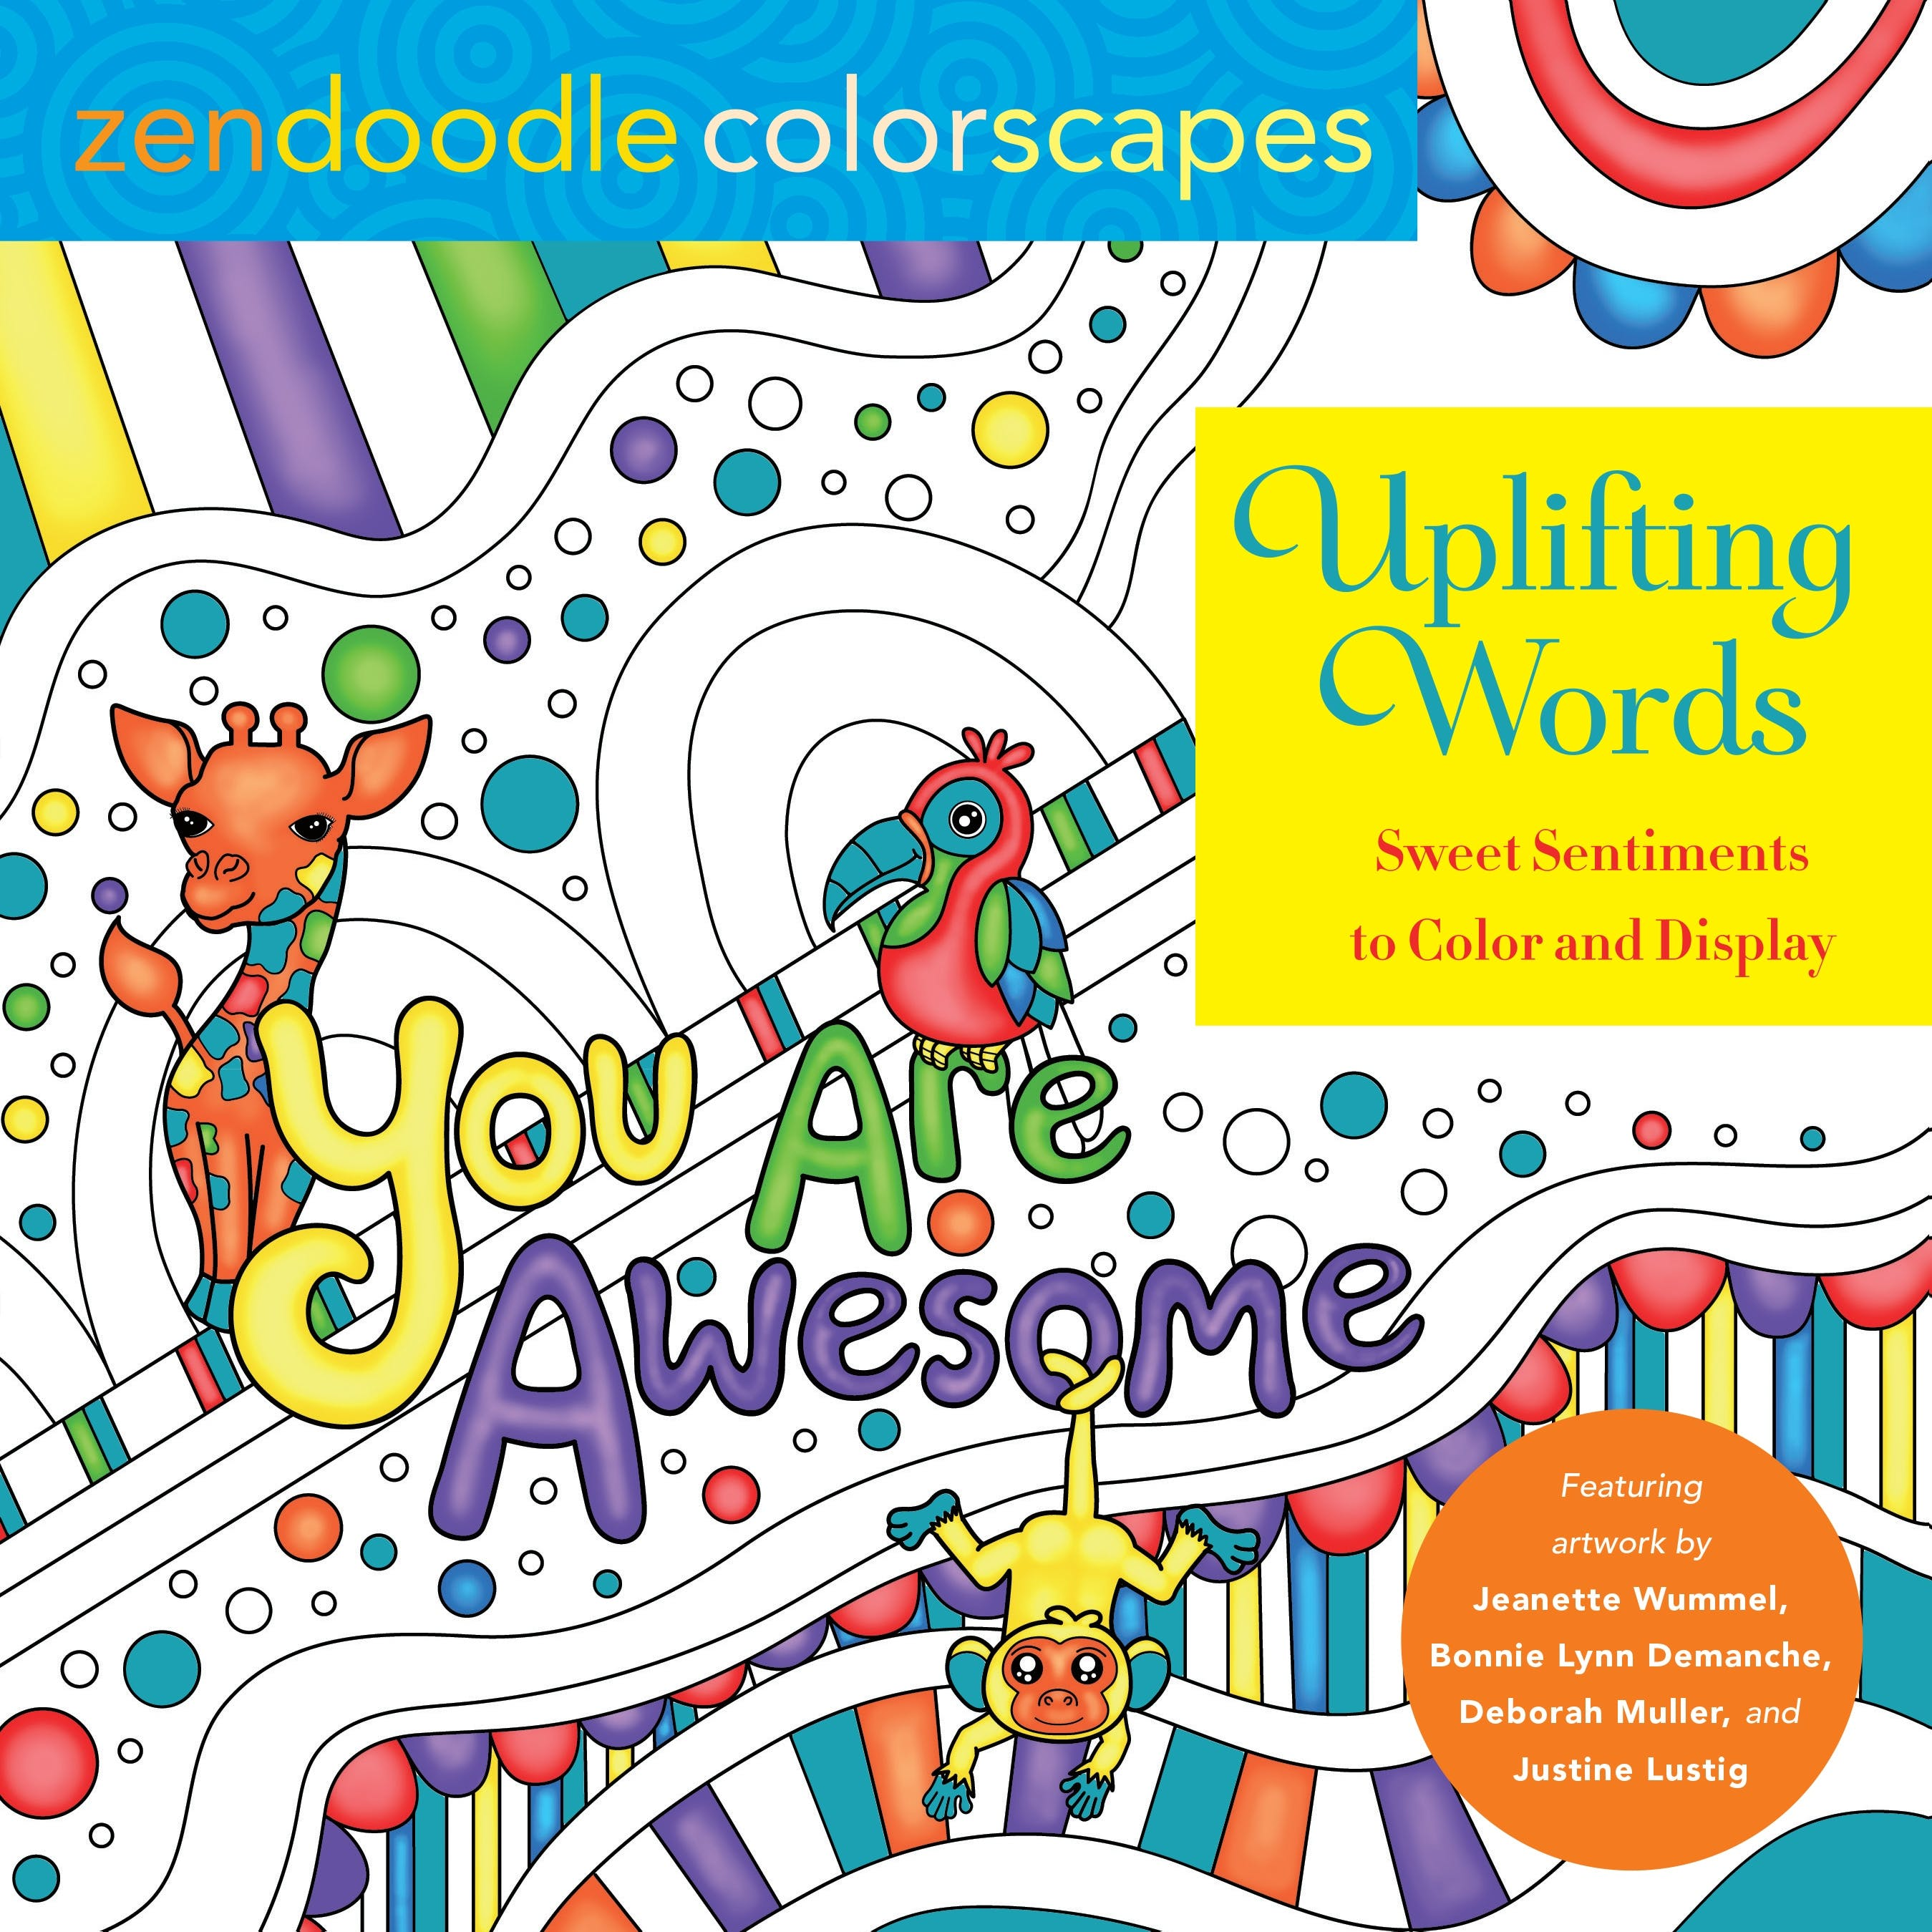 Image of Zendoodle Colorscapes: Uplifting Words